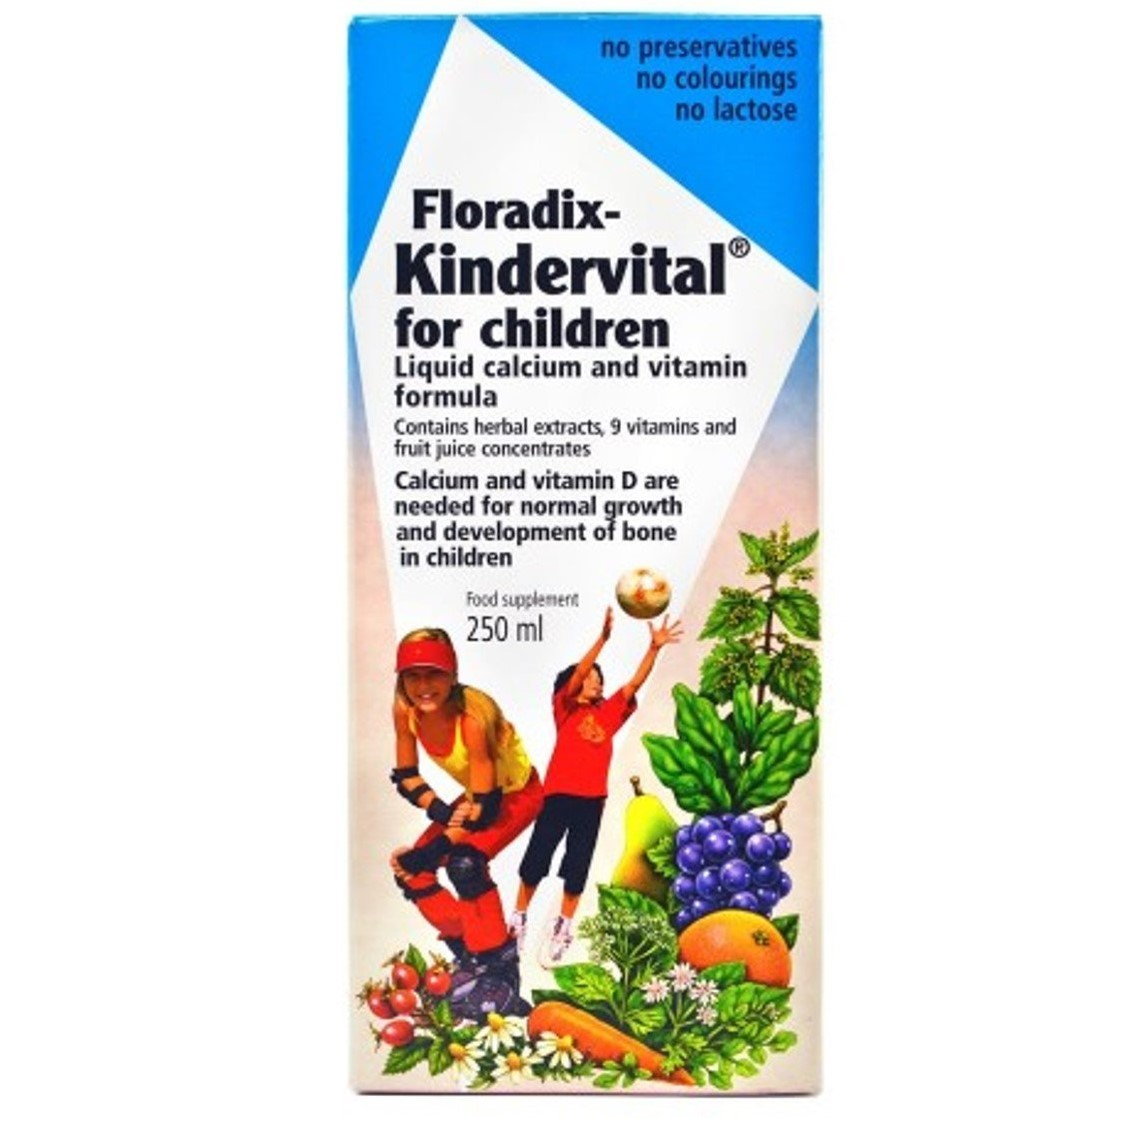 Salus Haus Floradix Kindervital for Children, 250 ml